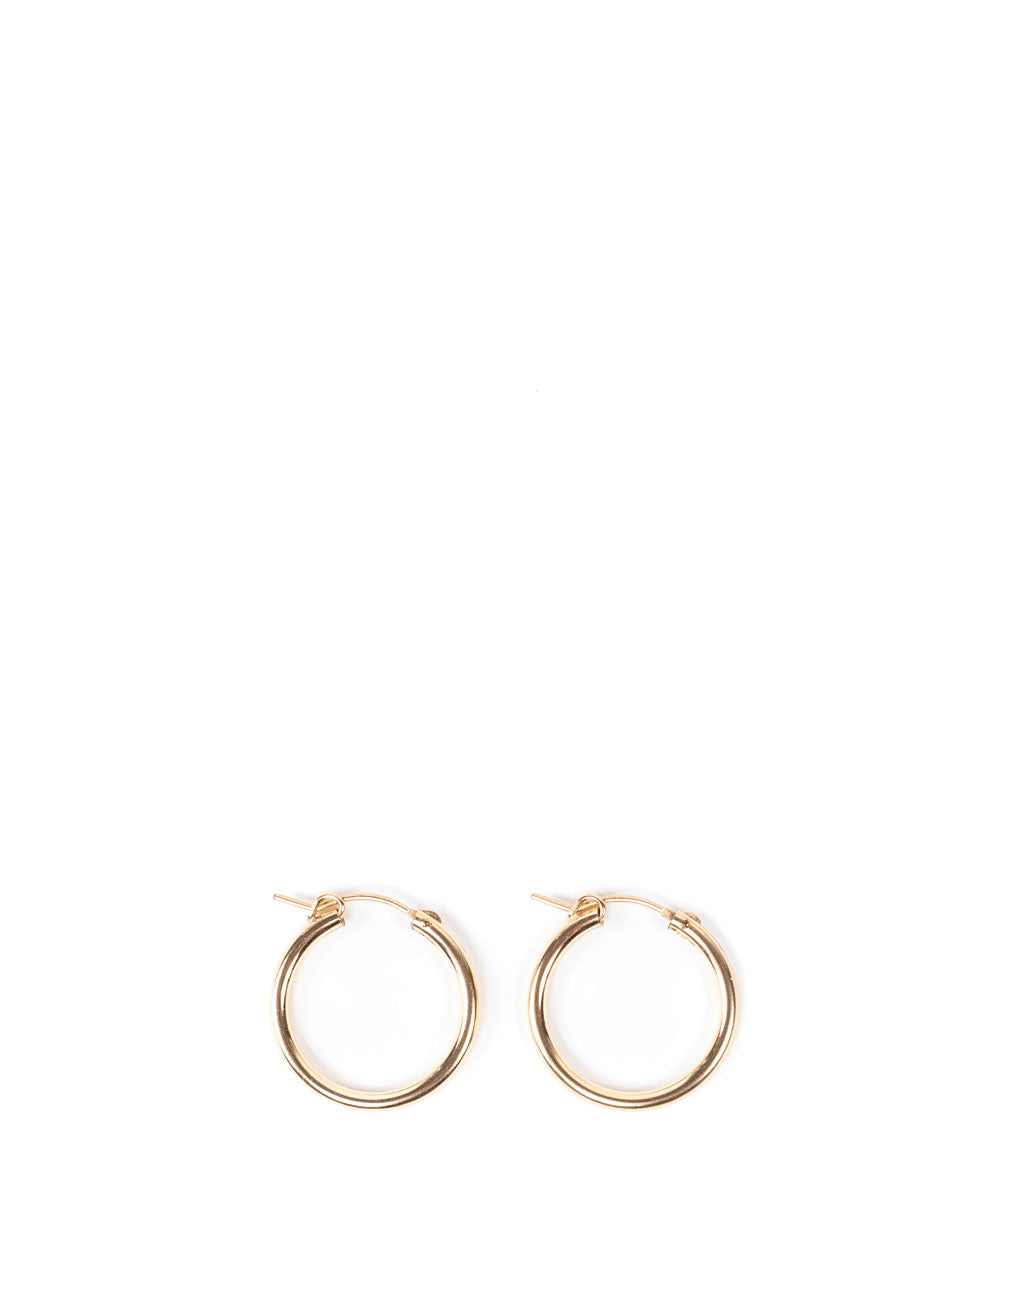 Hoop Earrings - Small | The Little Market